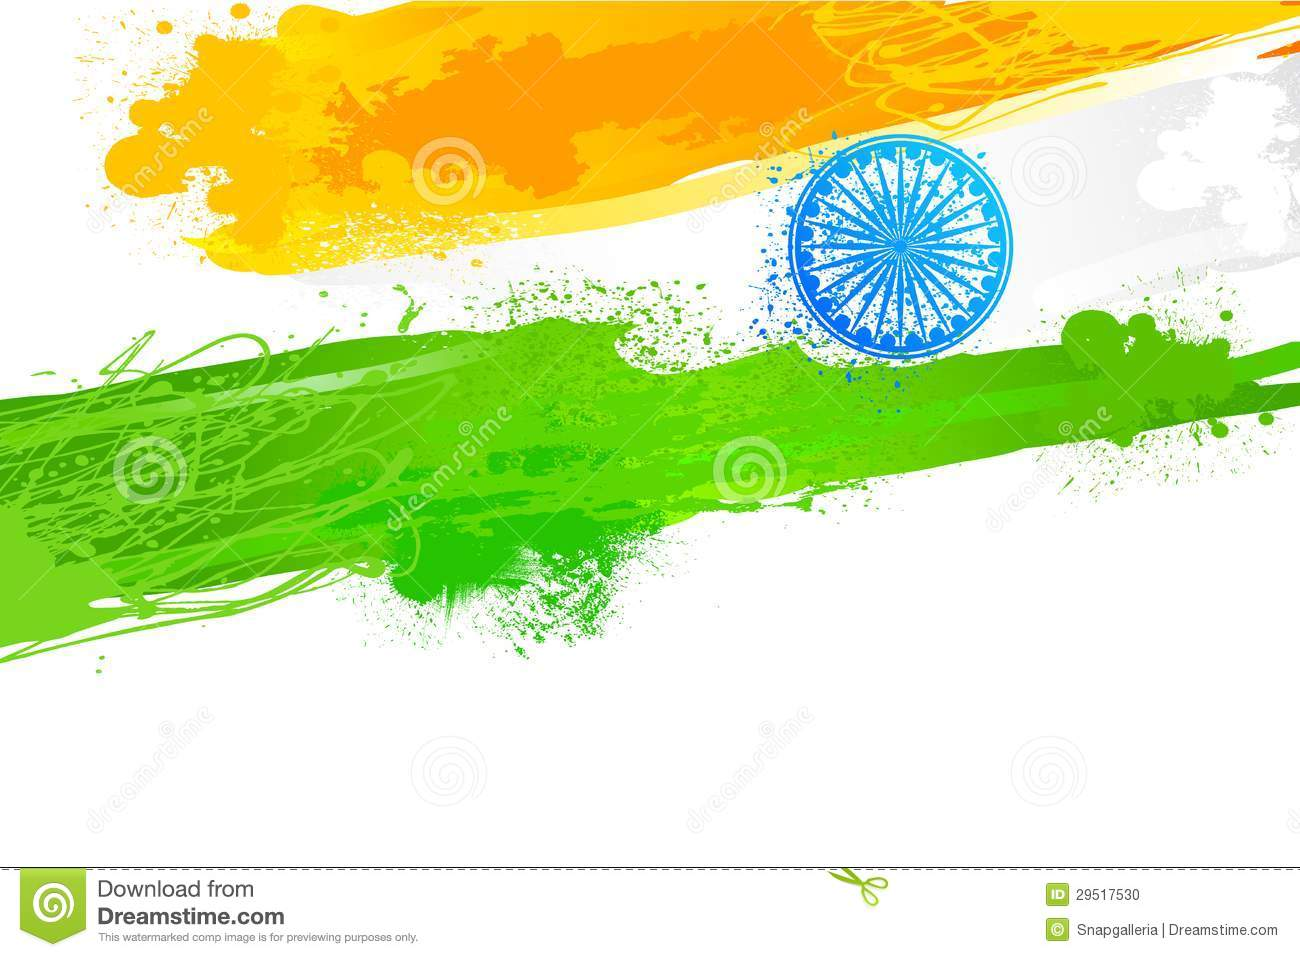 grungy indian wallpaper flag 29517530 grungy indian wallpaper with flag stock vector illustration of